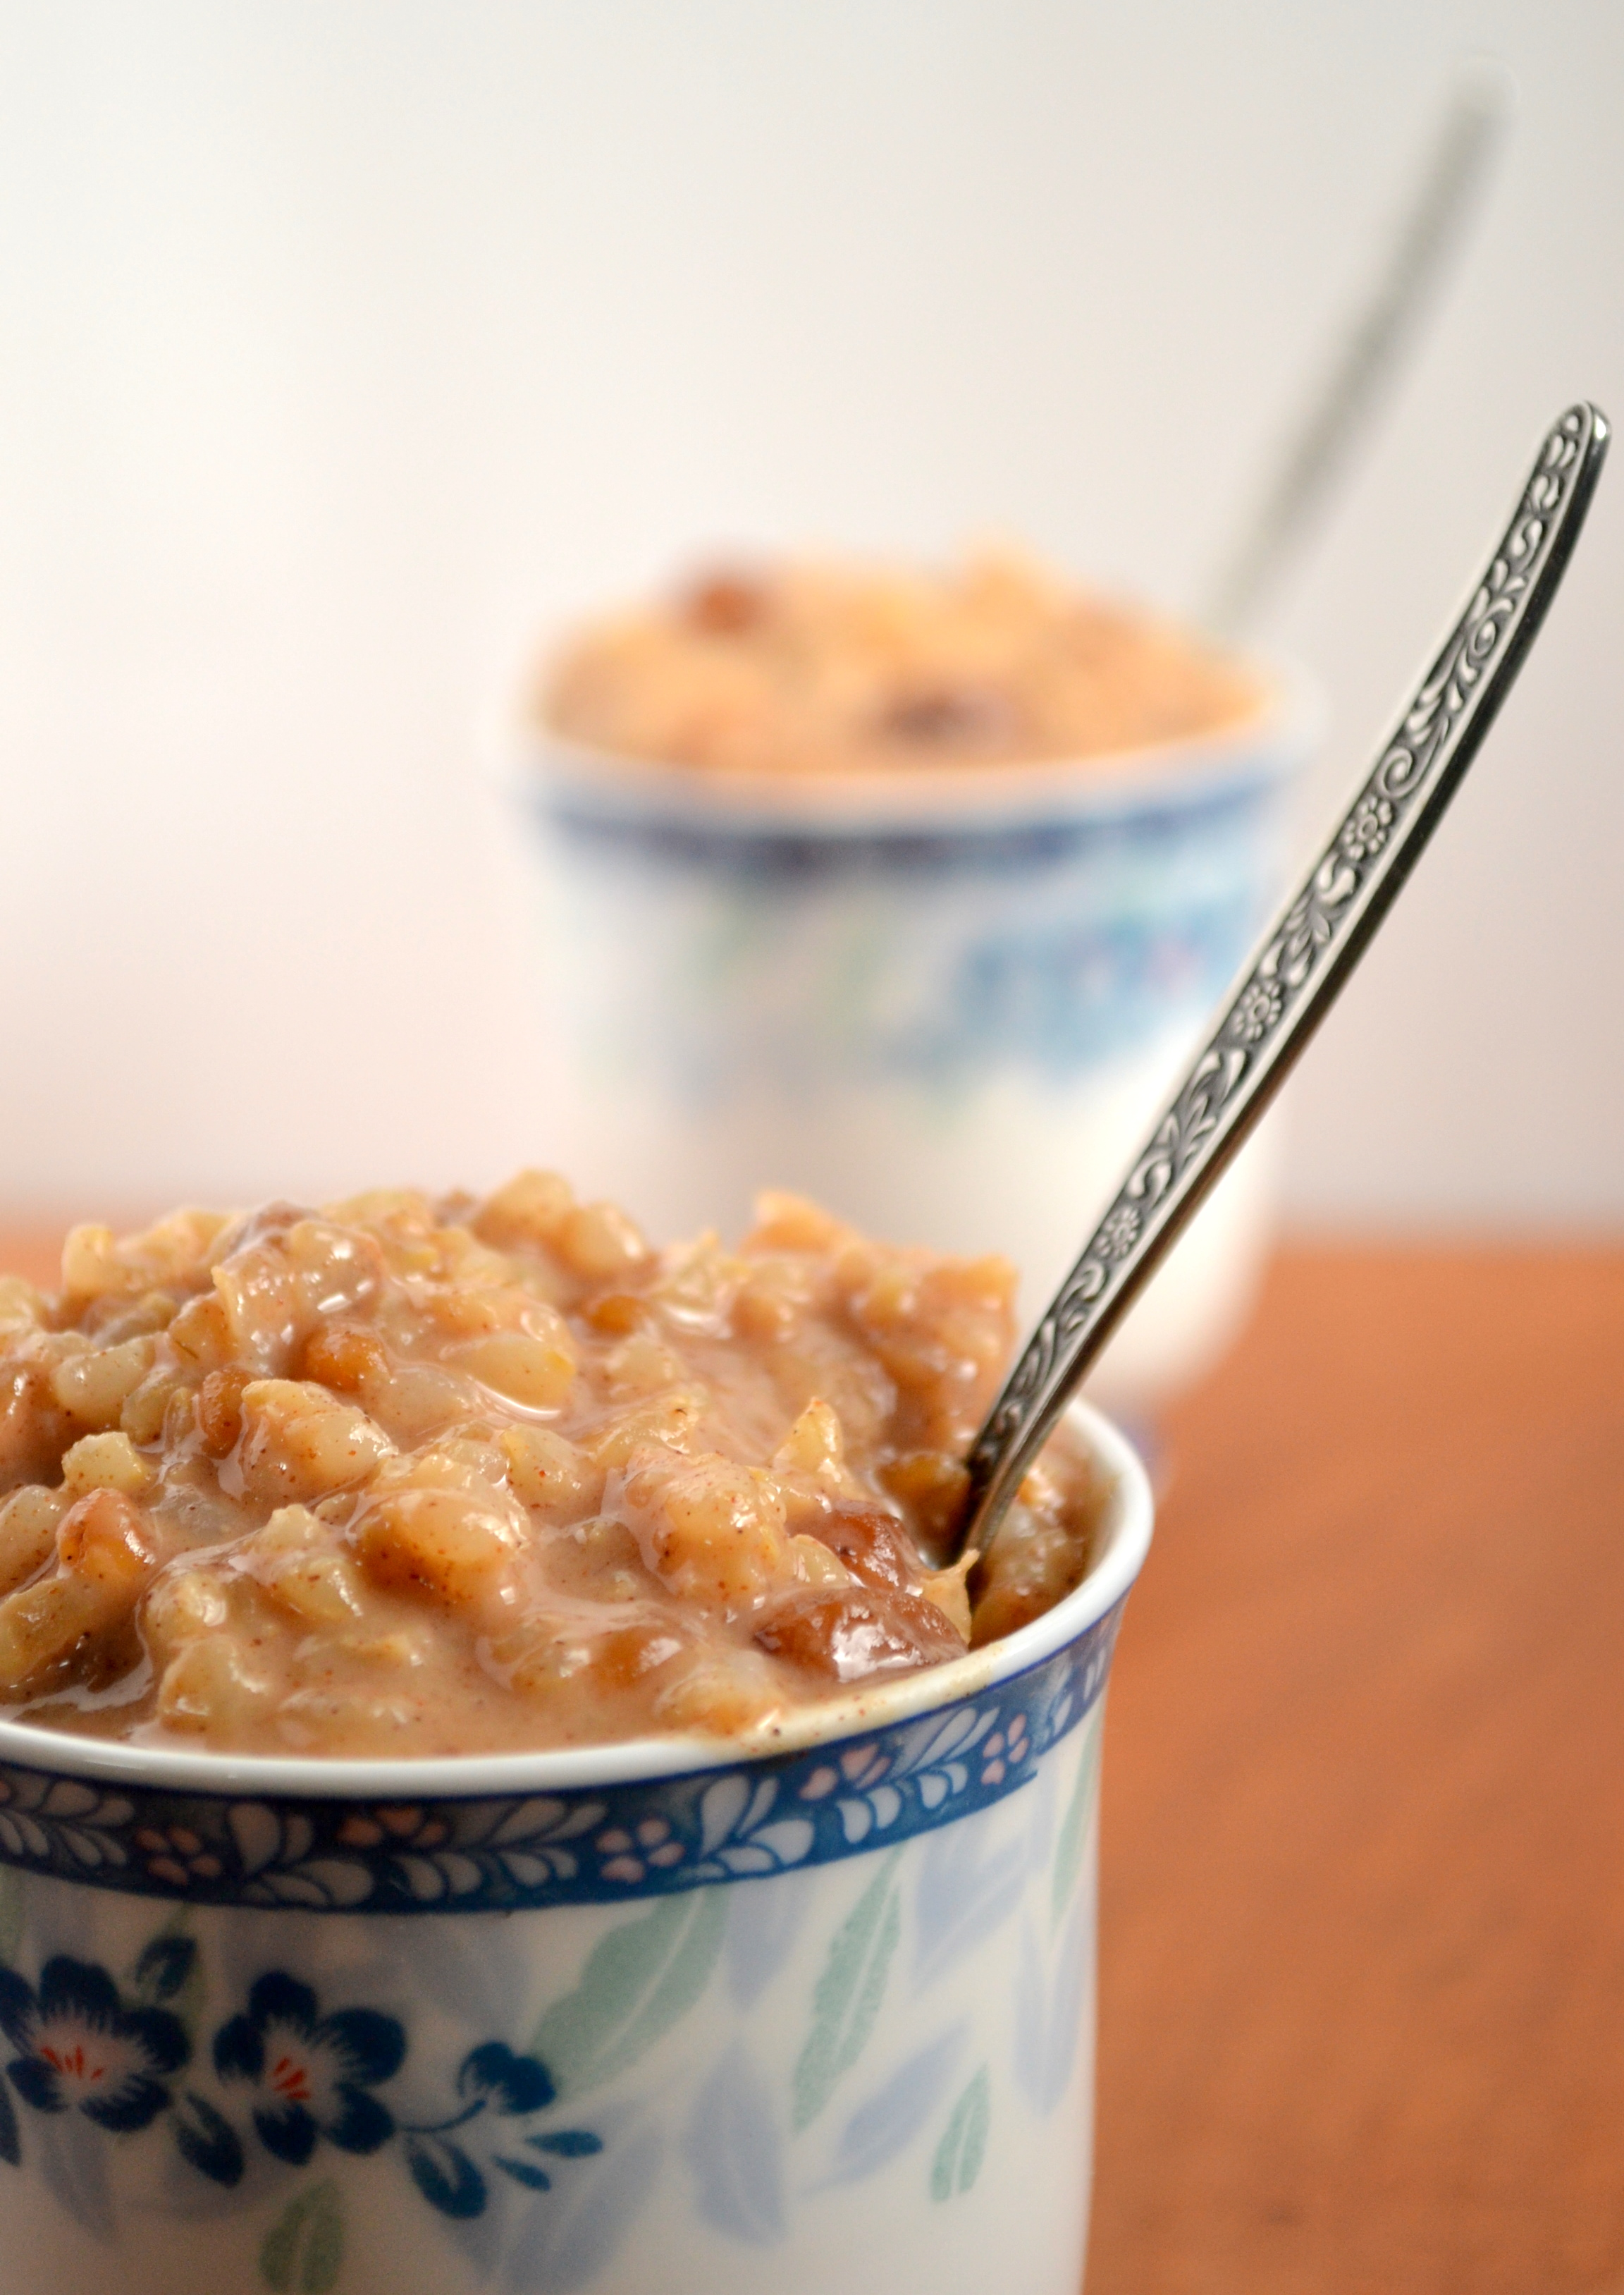 Cinnamon Raisin Brown Rice Pudding